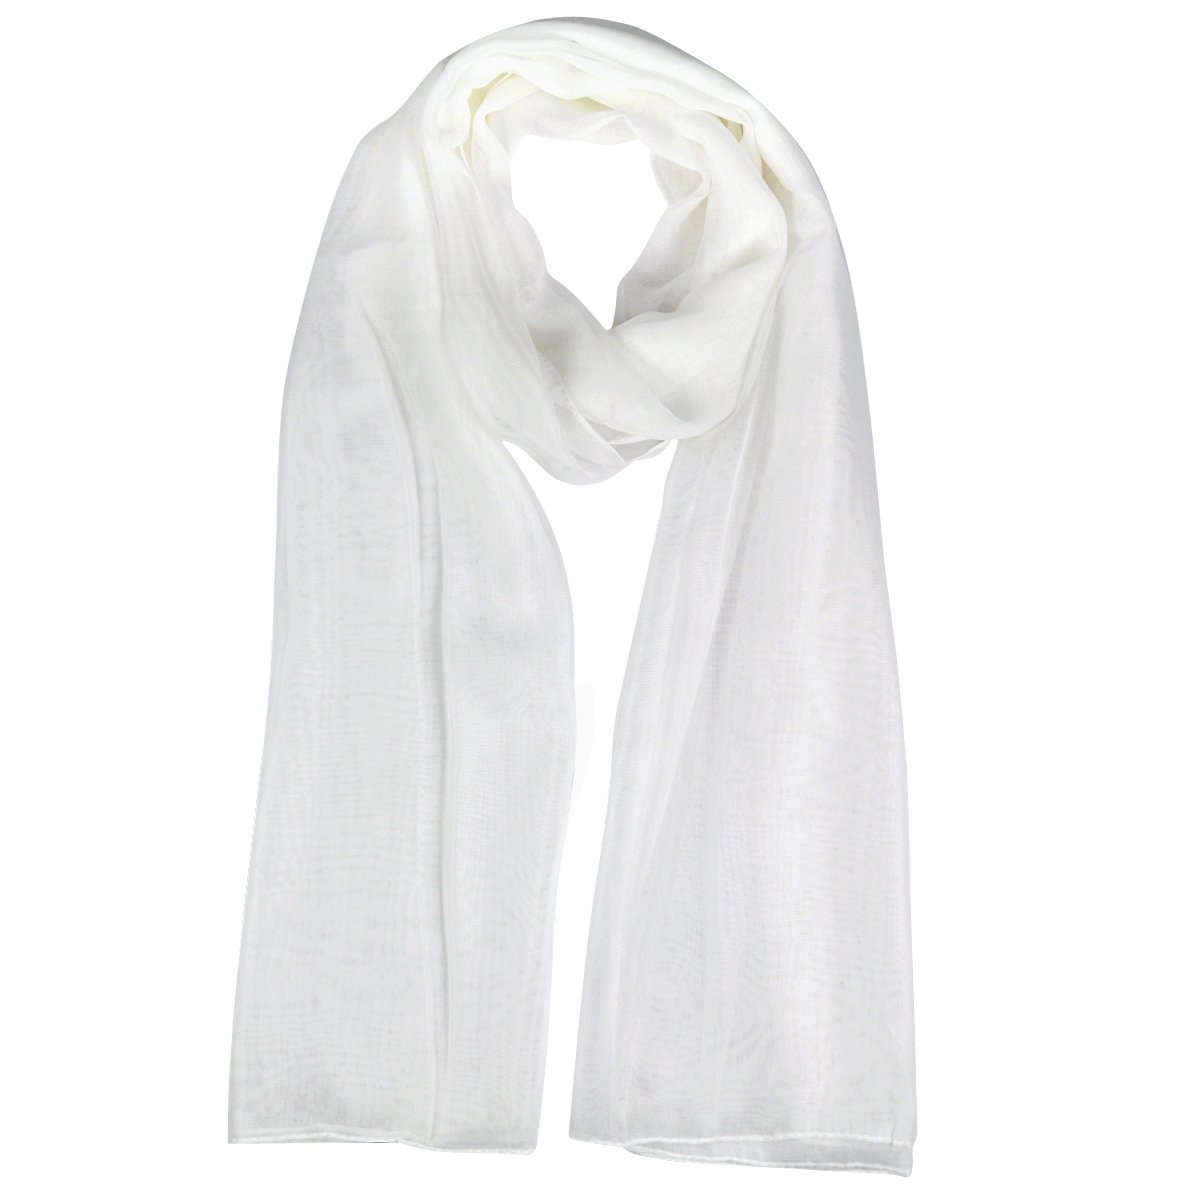 Fashion Ladies White Soft Long Large Chiffon Scarf Neck Head Wrap